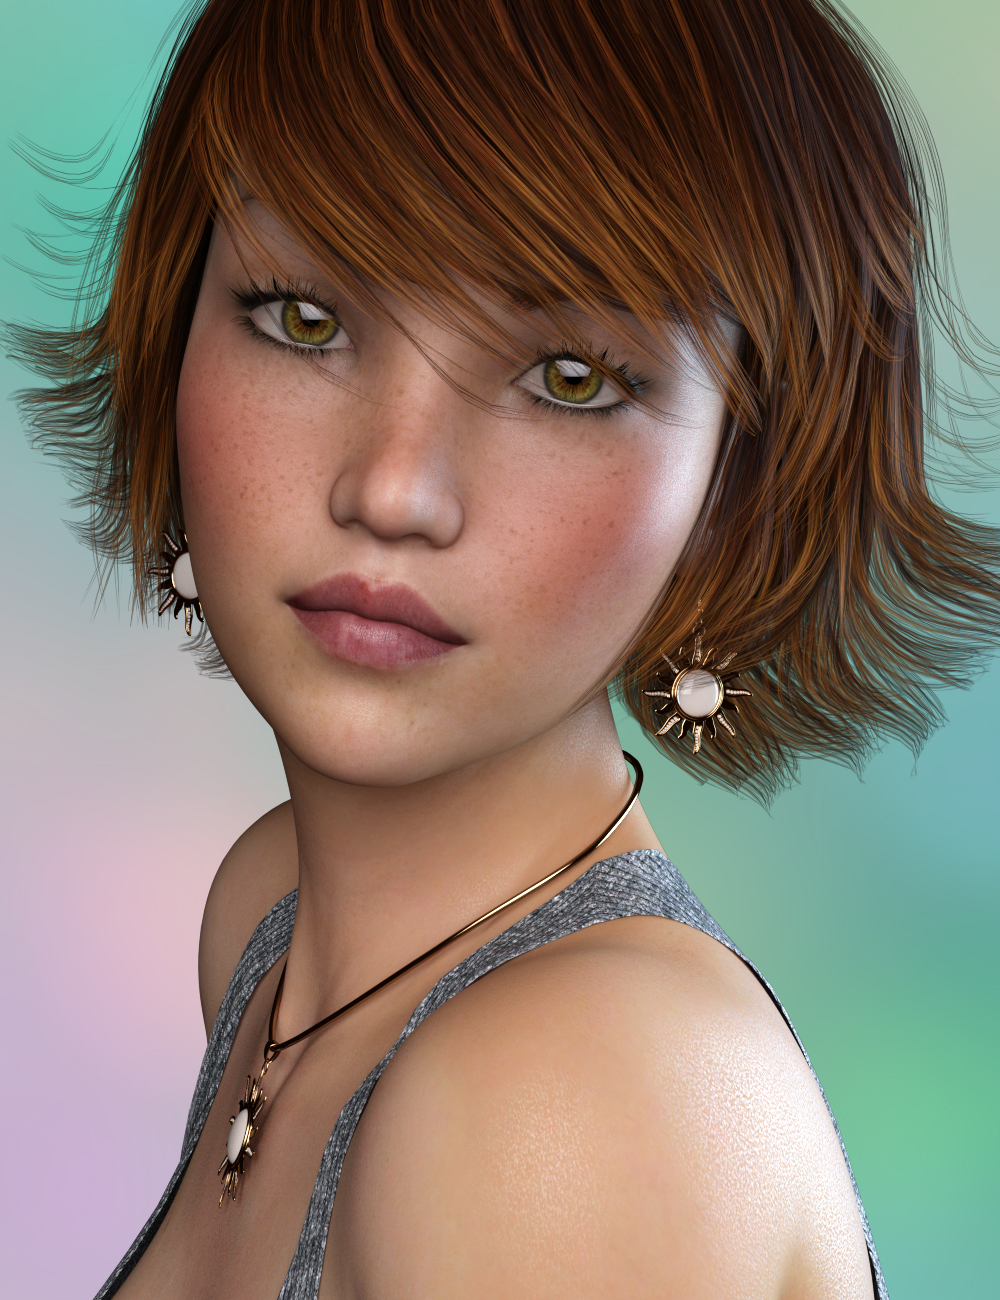 P3D May by: P3Design, 3D Models by Daz 3D